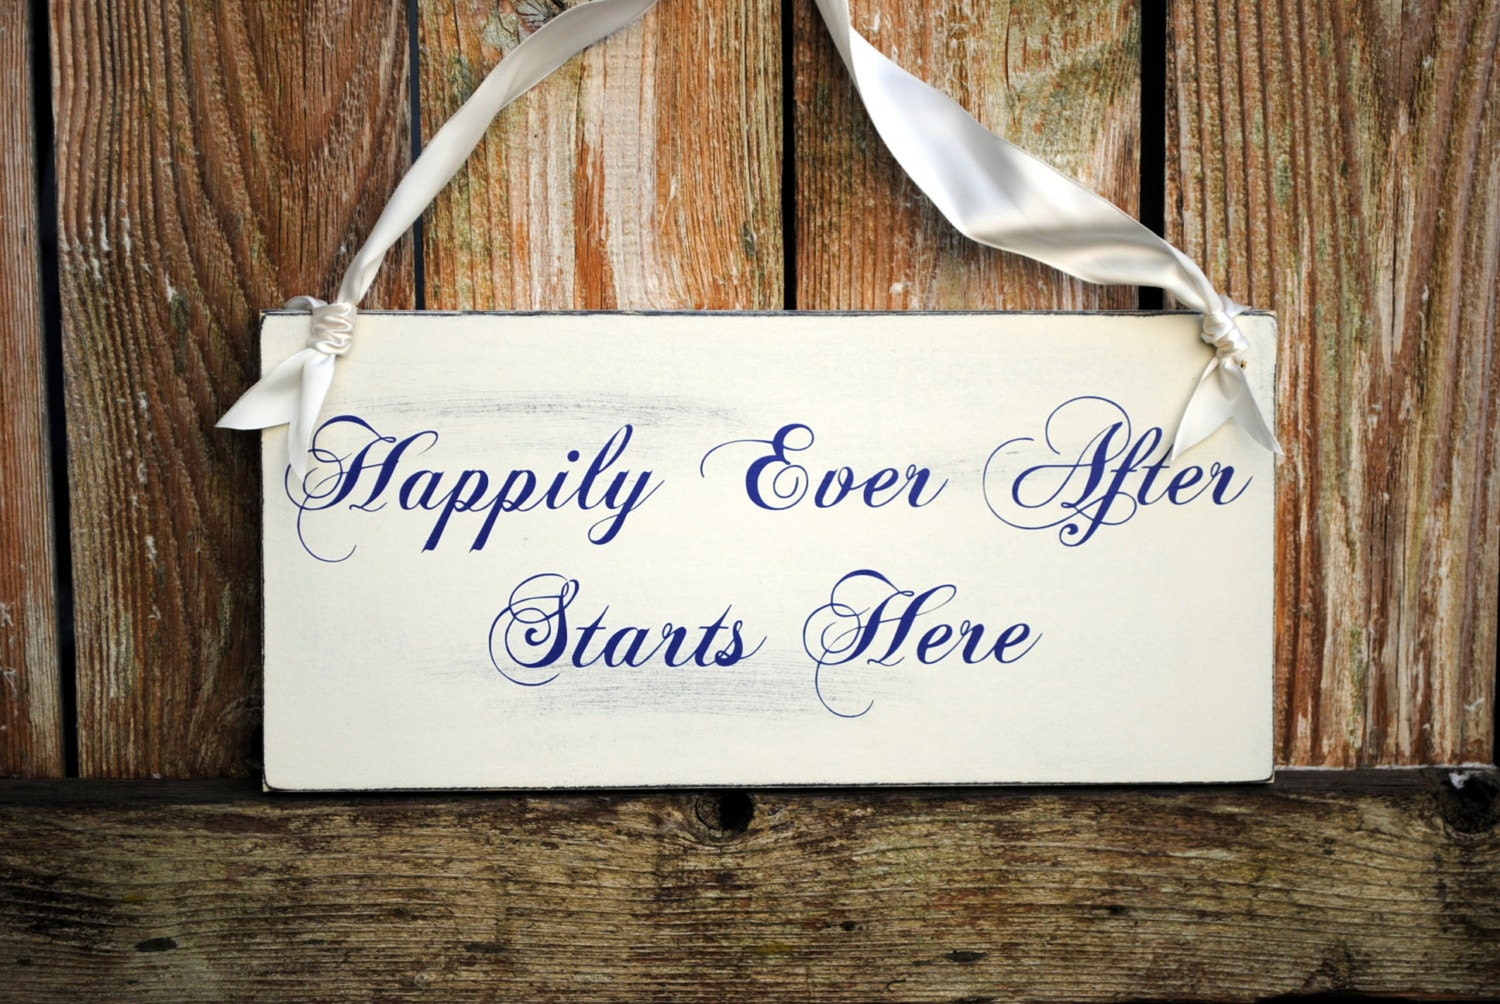 Happily Ever After Starts Here Wedding Sign By SignsToLiveBy